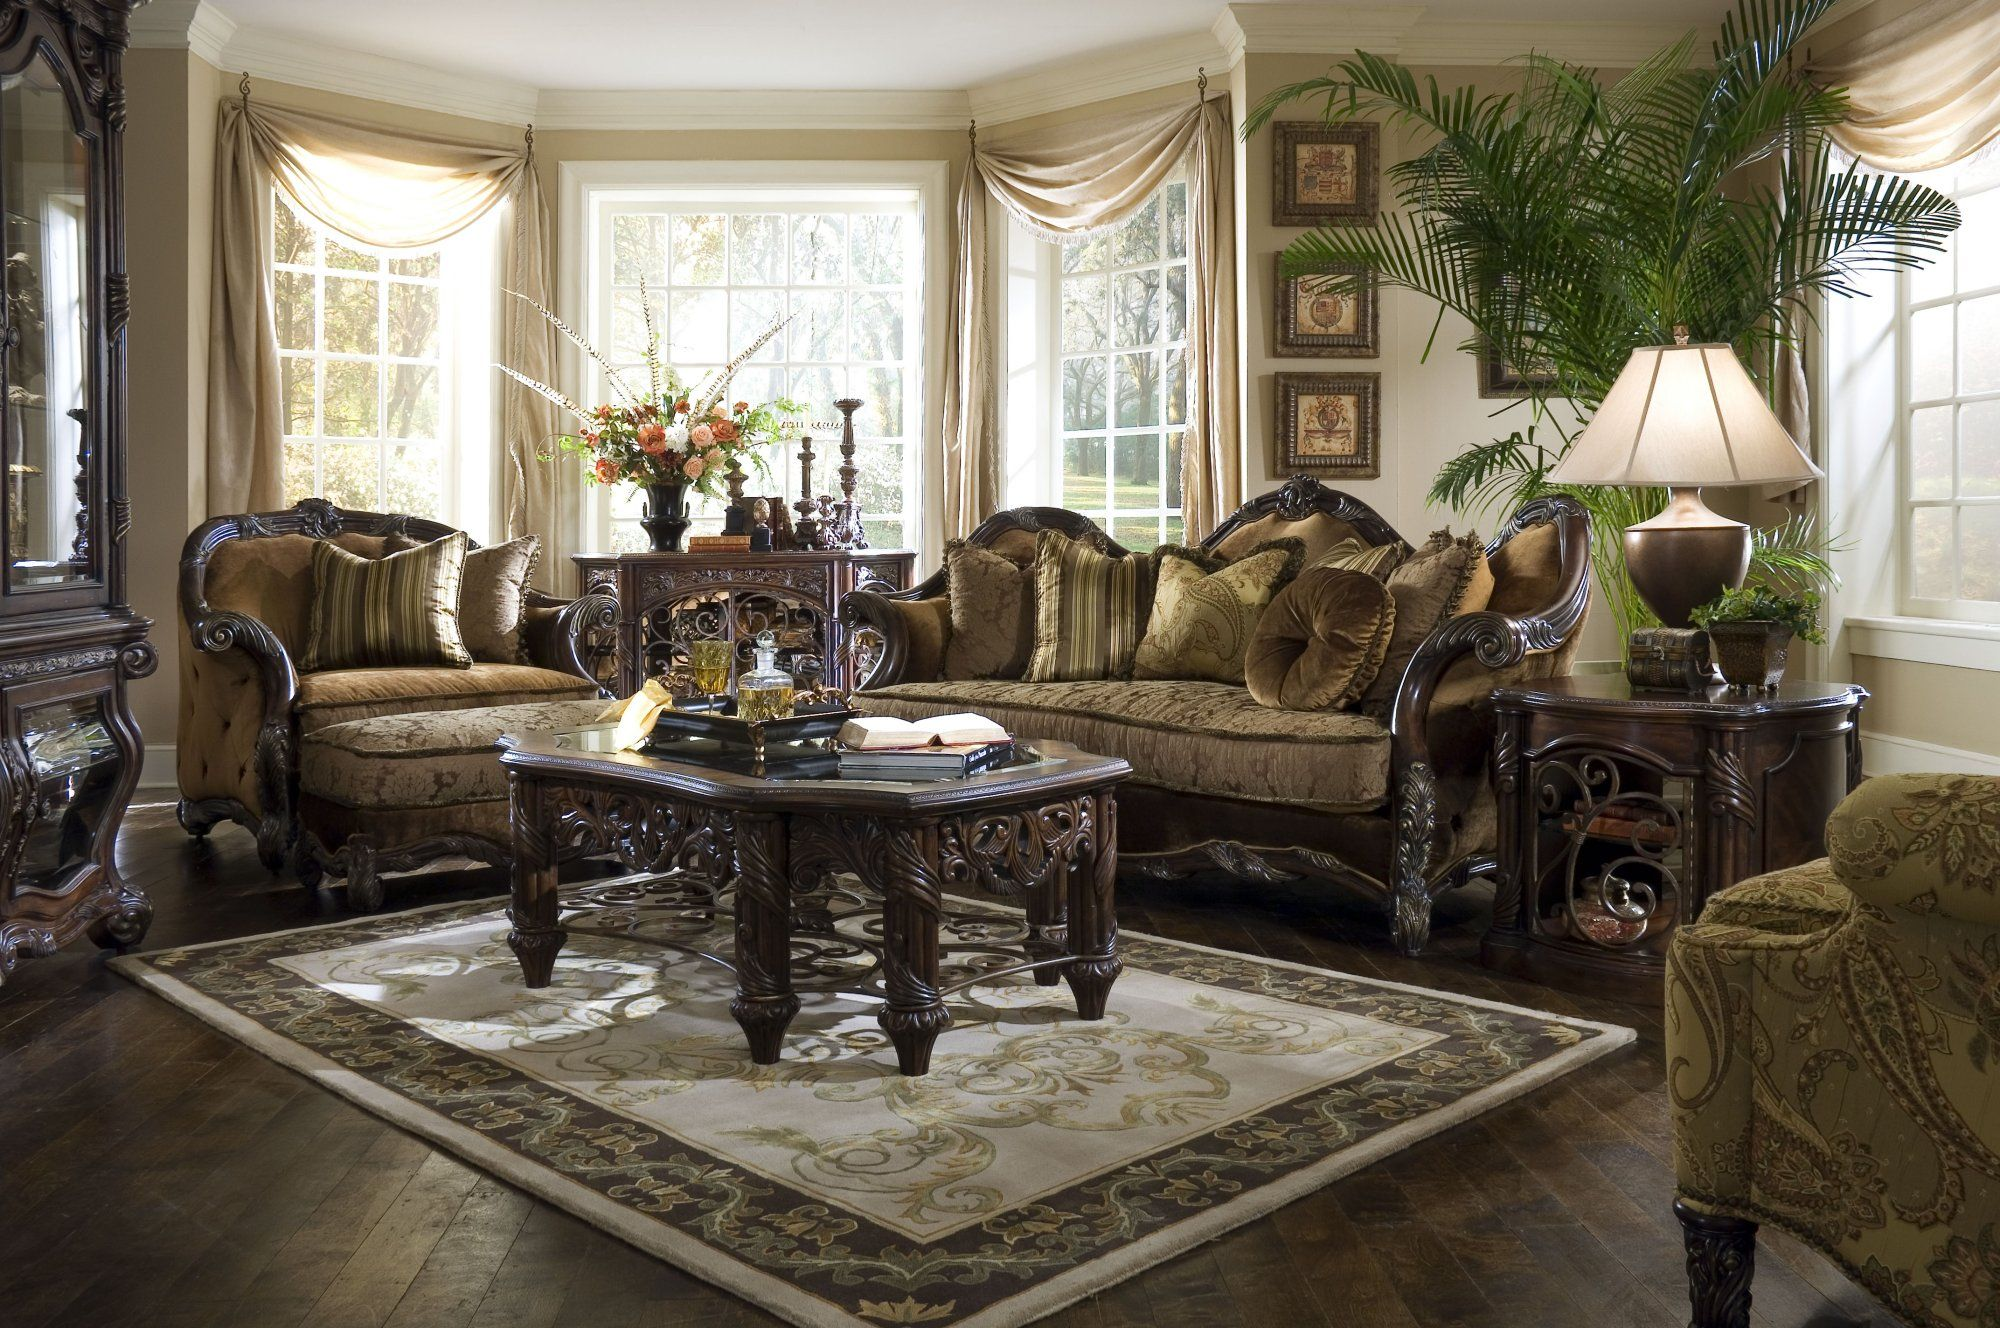 essex manor upholstered sitting room by michael amini aico rh pinterest co uk Aico Furniture Outlet Sovereign Michael Amini Living Room